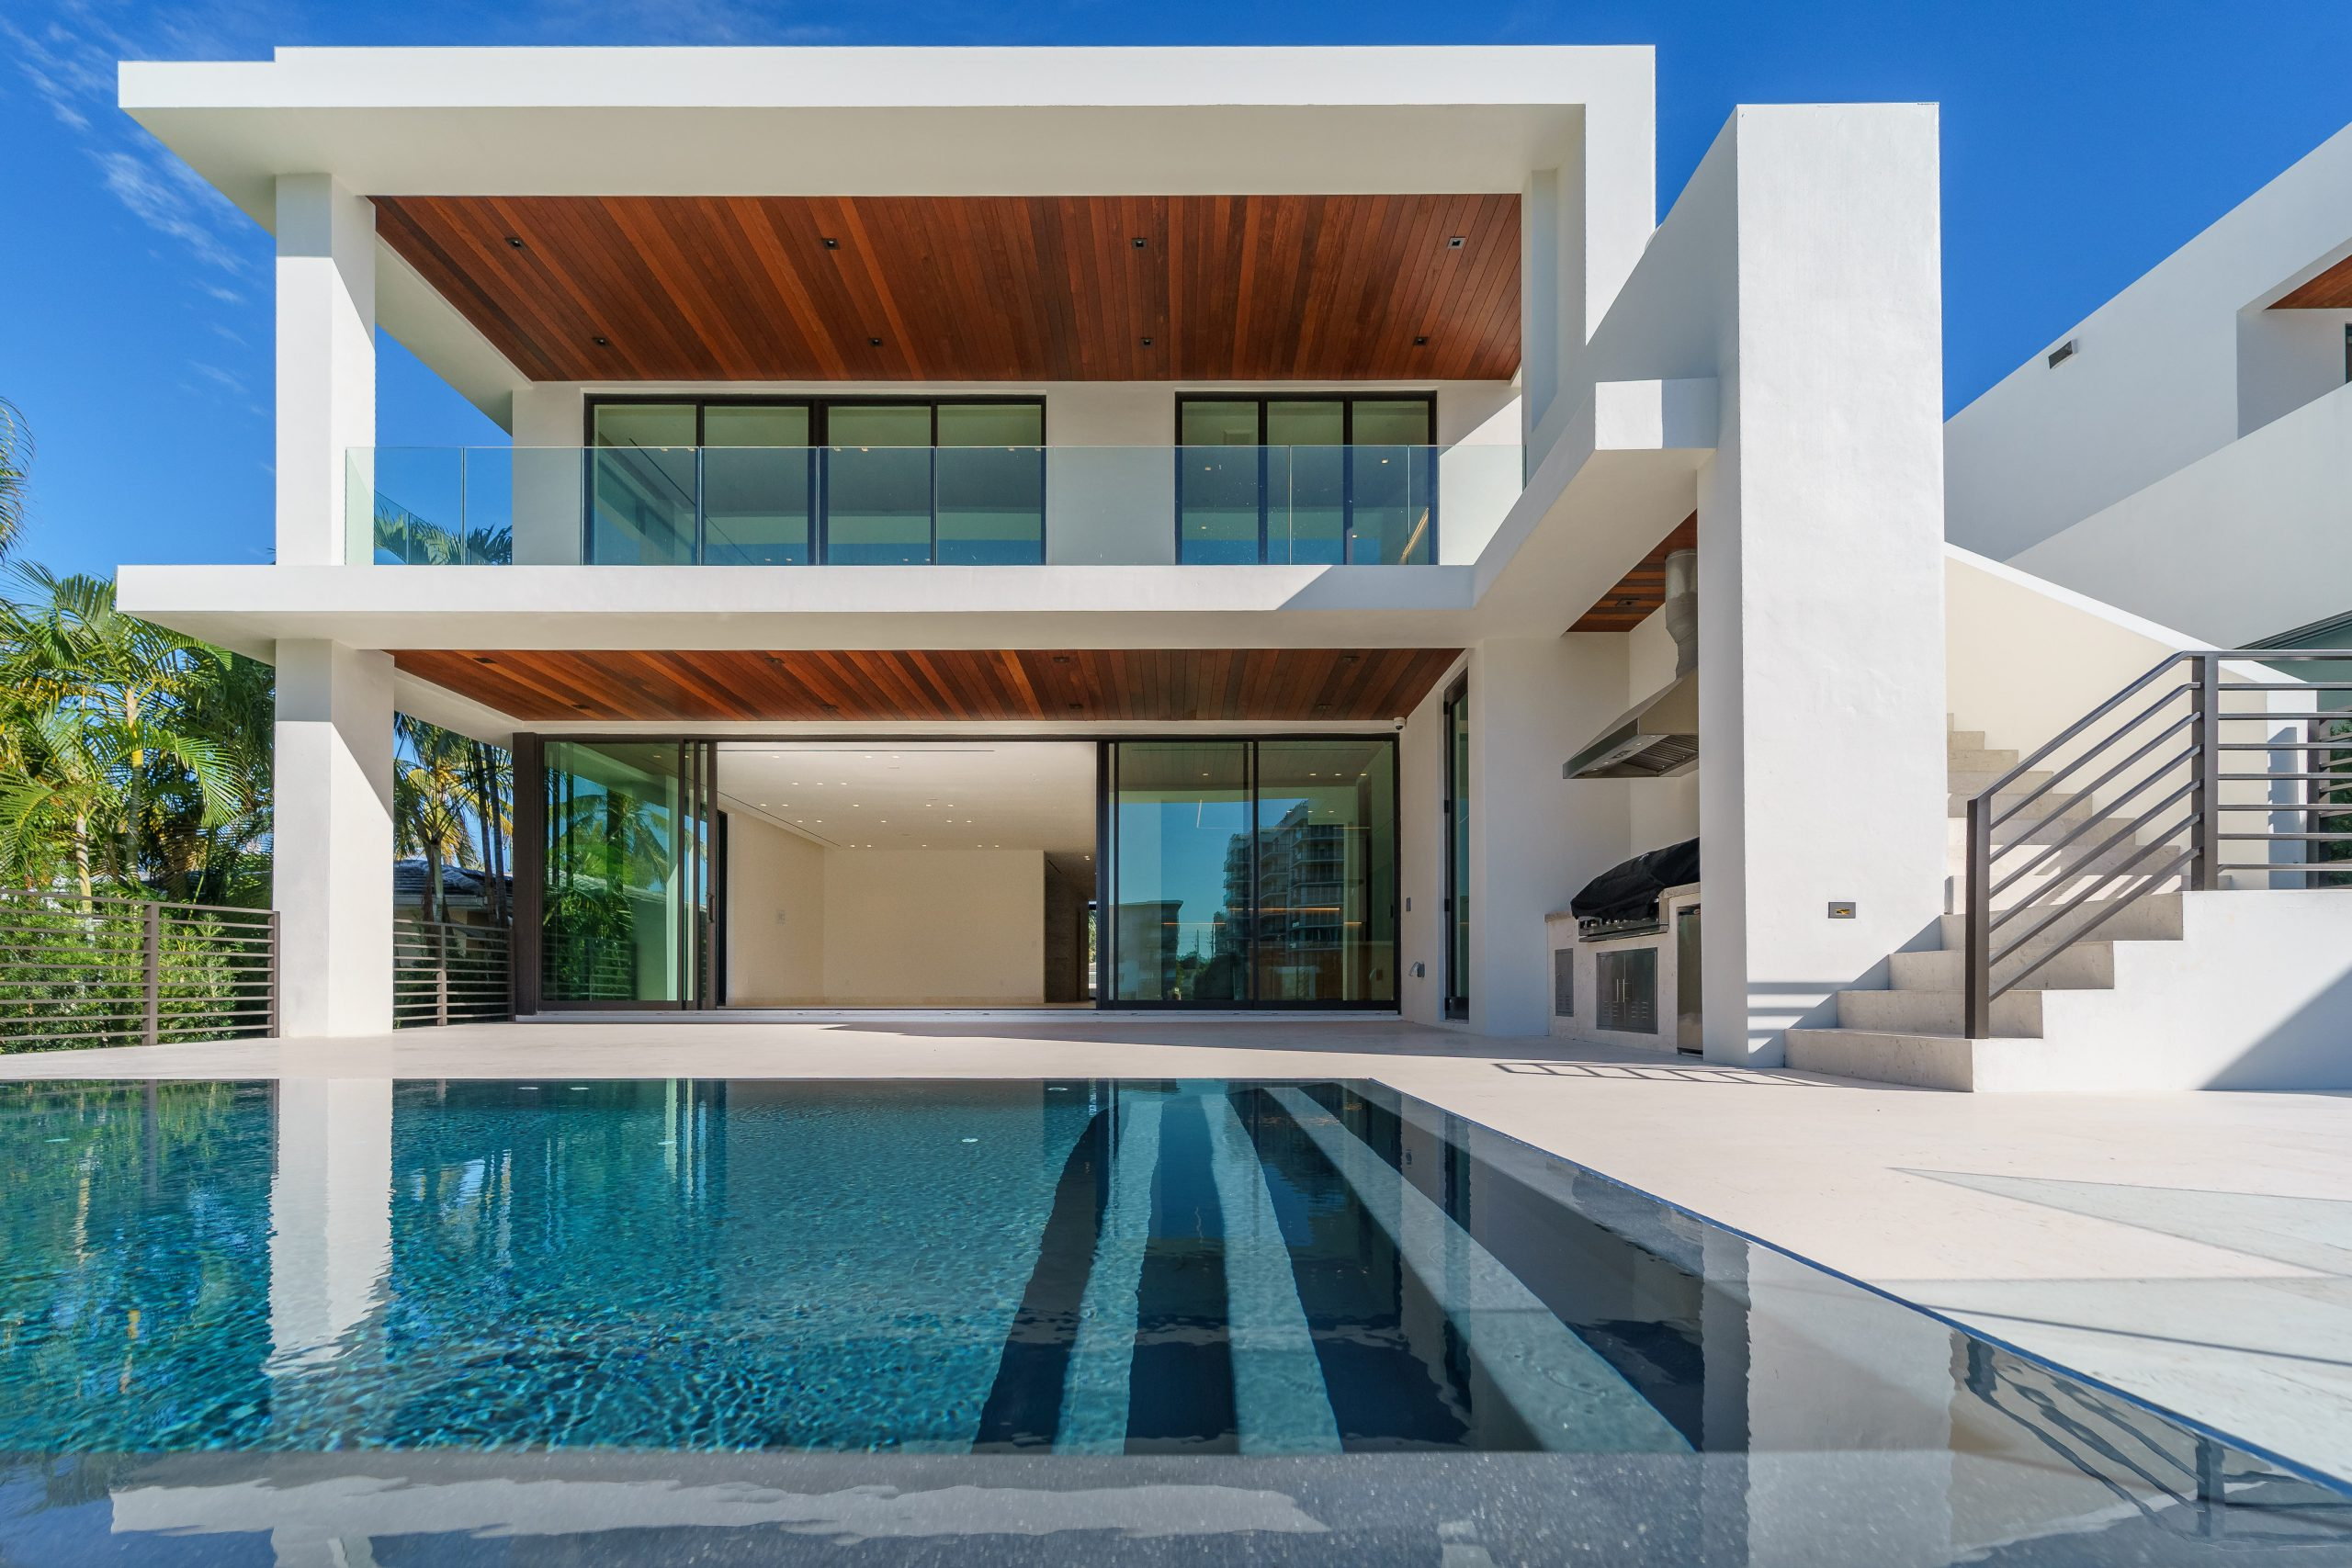 Sotogrande Real Estate Market Overview: Size Matters Most During the Pandemic